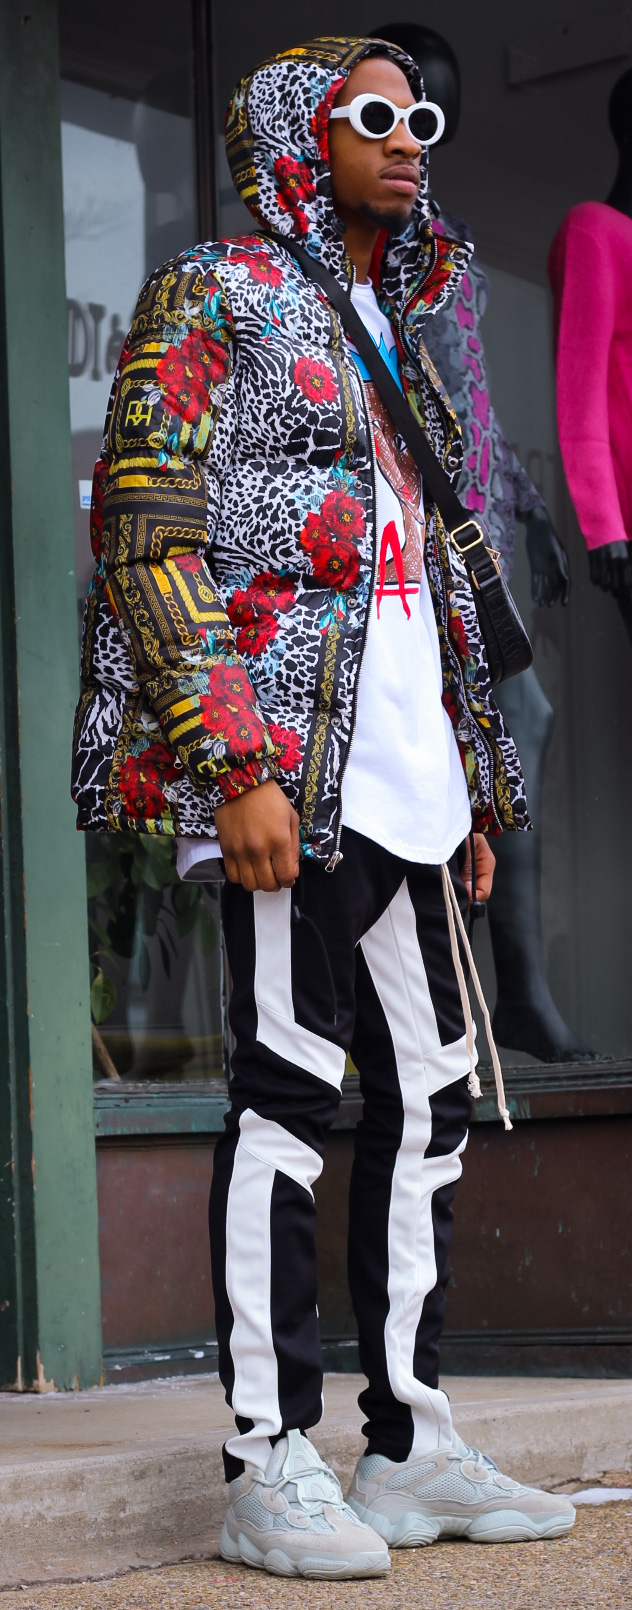 Floral Chains Puffer Jacket & Sing Bag by Reason  Joggers by EPTM  Tee by Cooper9  Sunglasses available in store  Model: Eli   Photo by Maik Mur   Styled by Giovanni Centurione